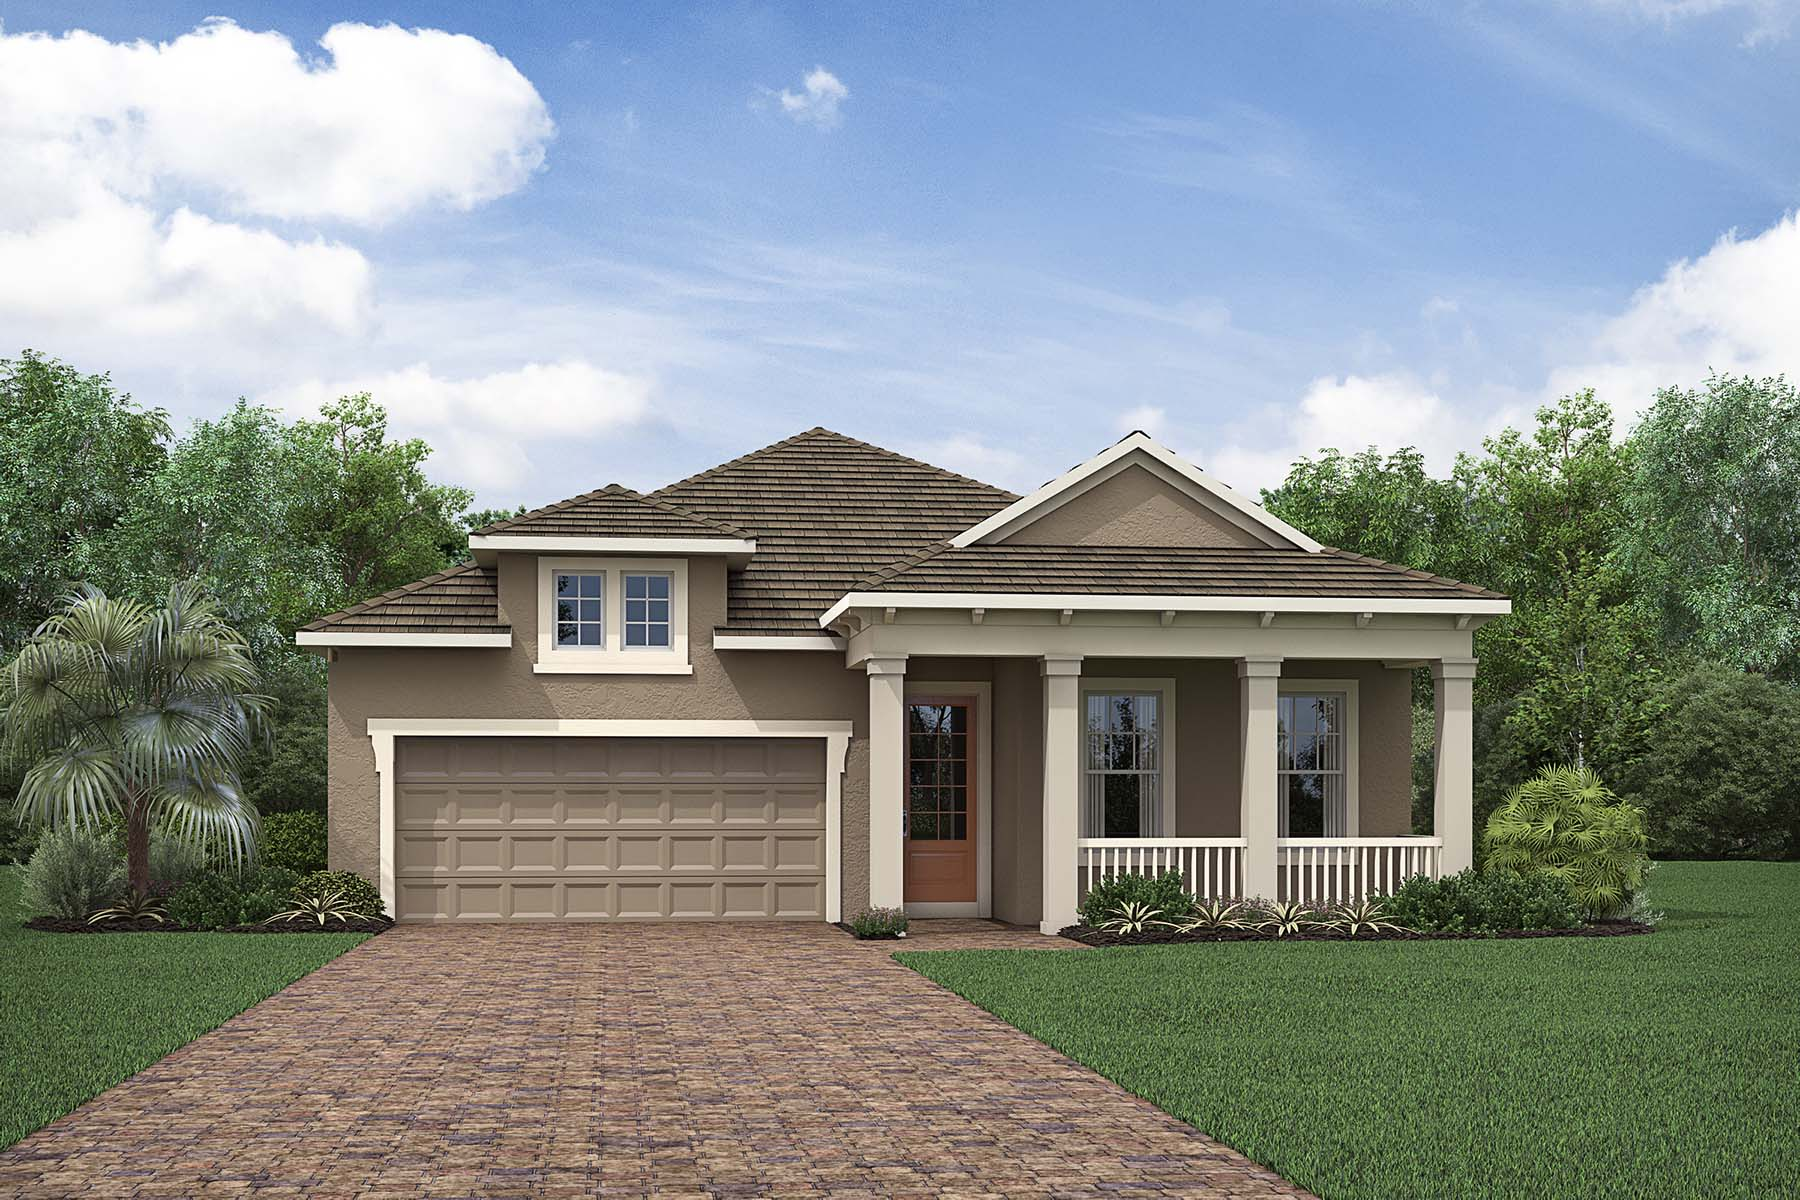 Banyan Plan elevationwestindies_compasslanding_banyan at Compass Landing in Naples Florida by Mattamy Homes